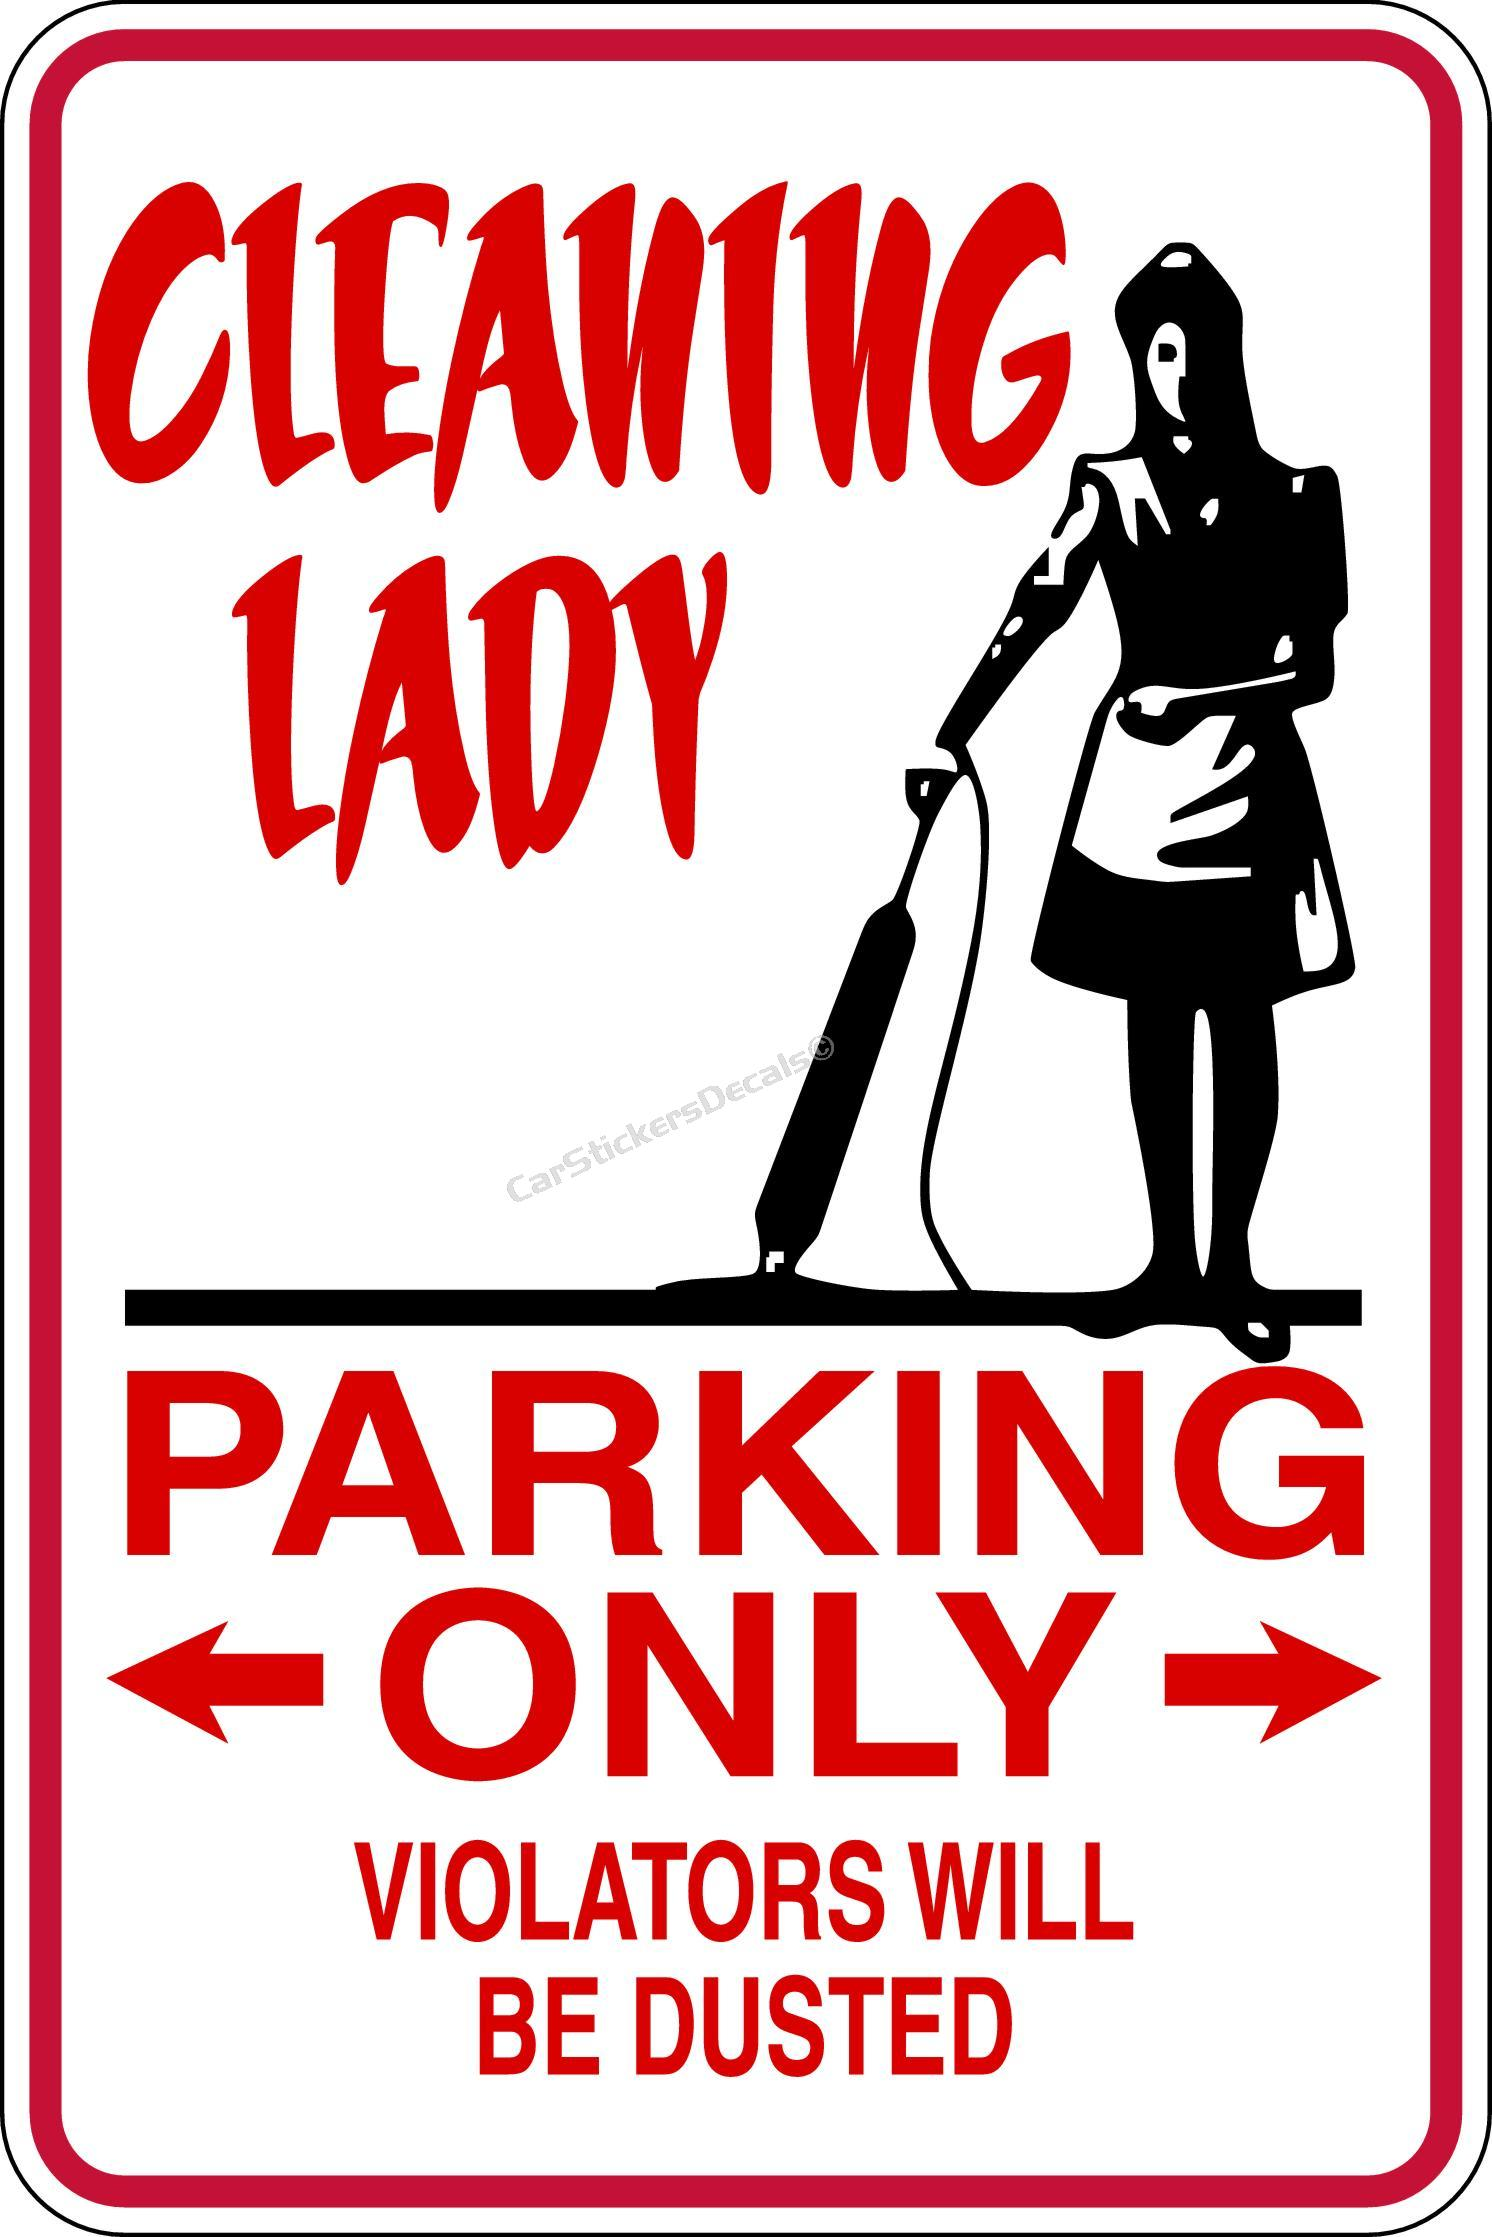 Cleaning Lady Cartoons Cleaning Lady Cartoon Funny Cleaning Lady